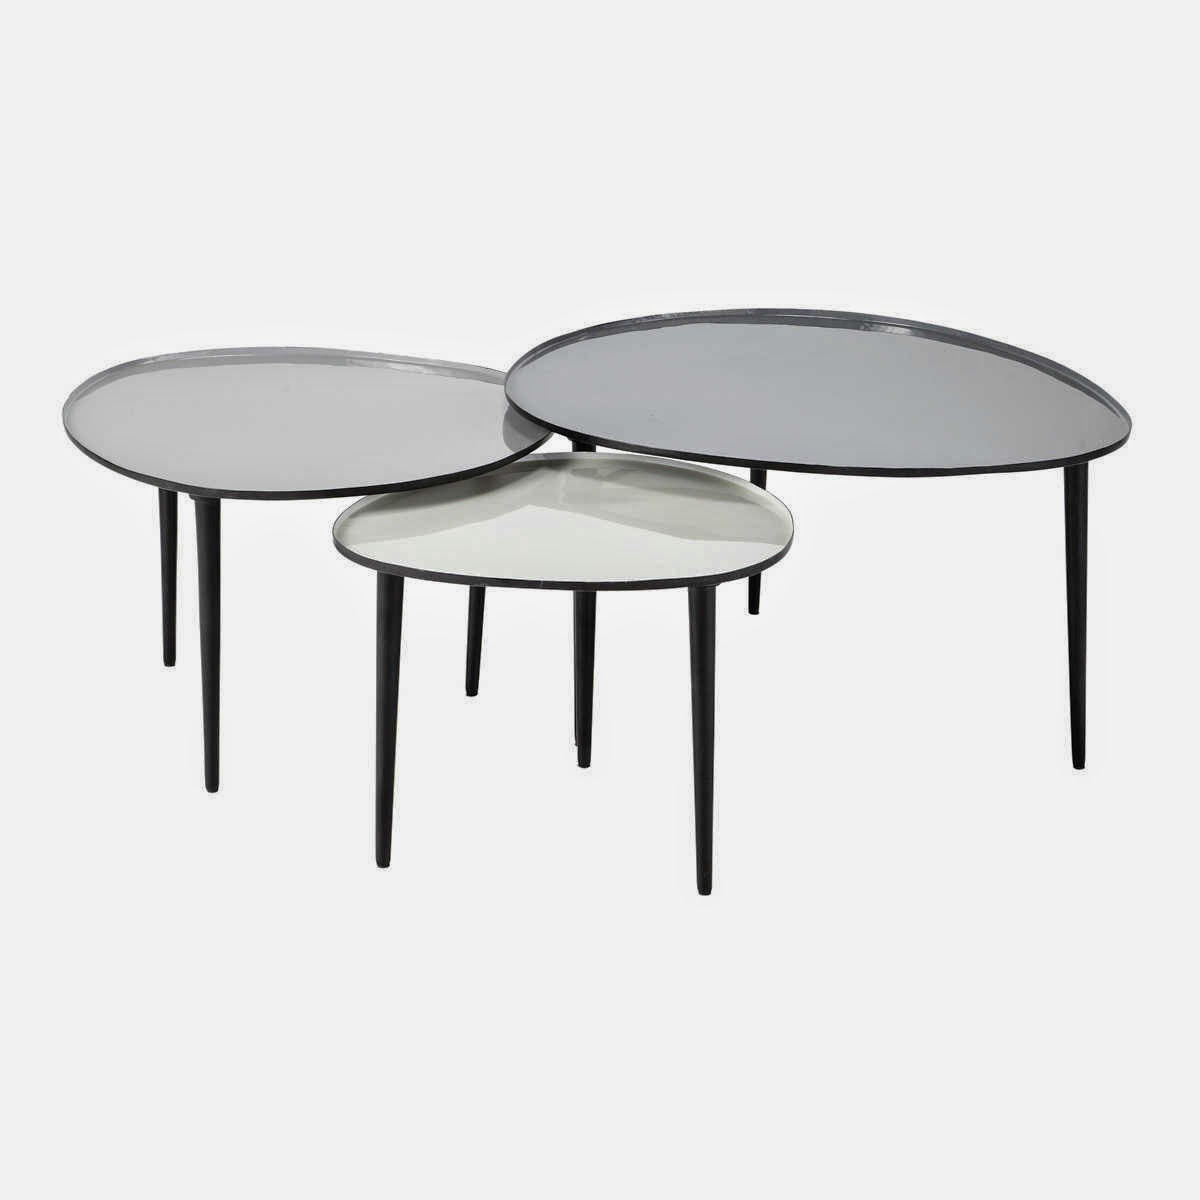 les tables basses gigognes caract rielle. Black Bedroom Furniture Sets. Home Design Ideas